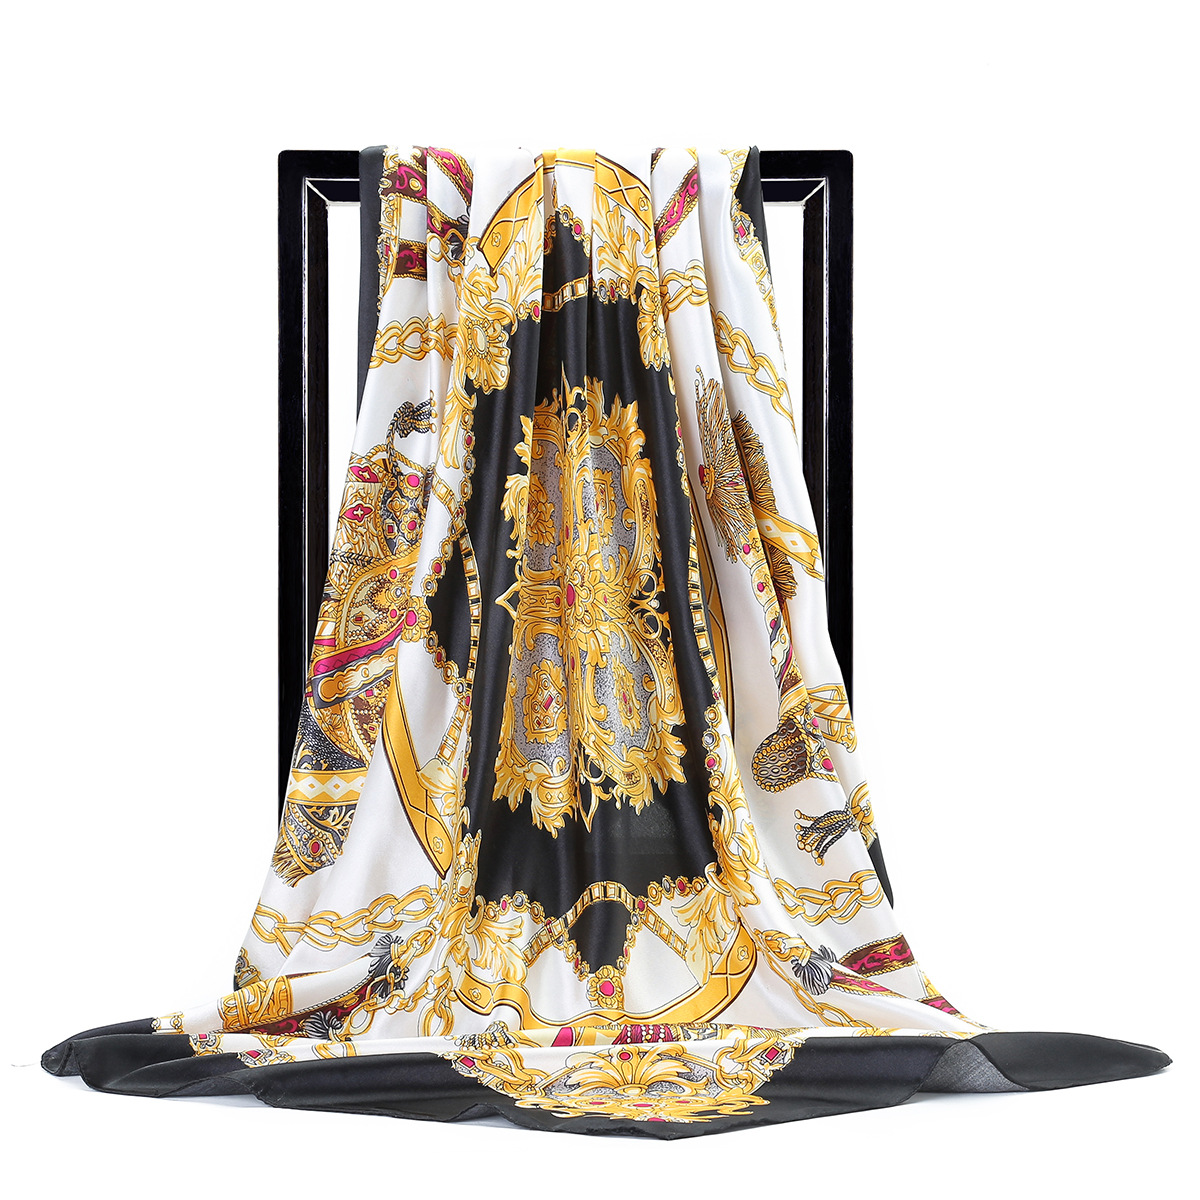 2020 Spring And Autumn Women's Luxury Silk New Printing Silk Scarves Tourism Seaside Large Size Scarf Fashion Sunscreen Shawl